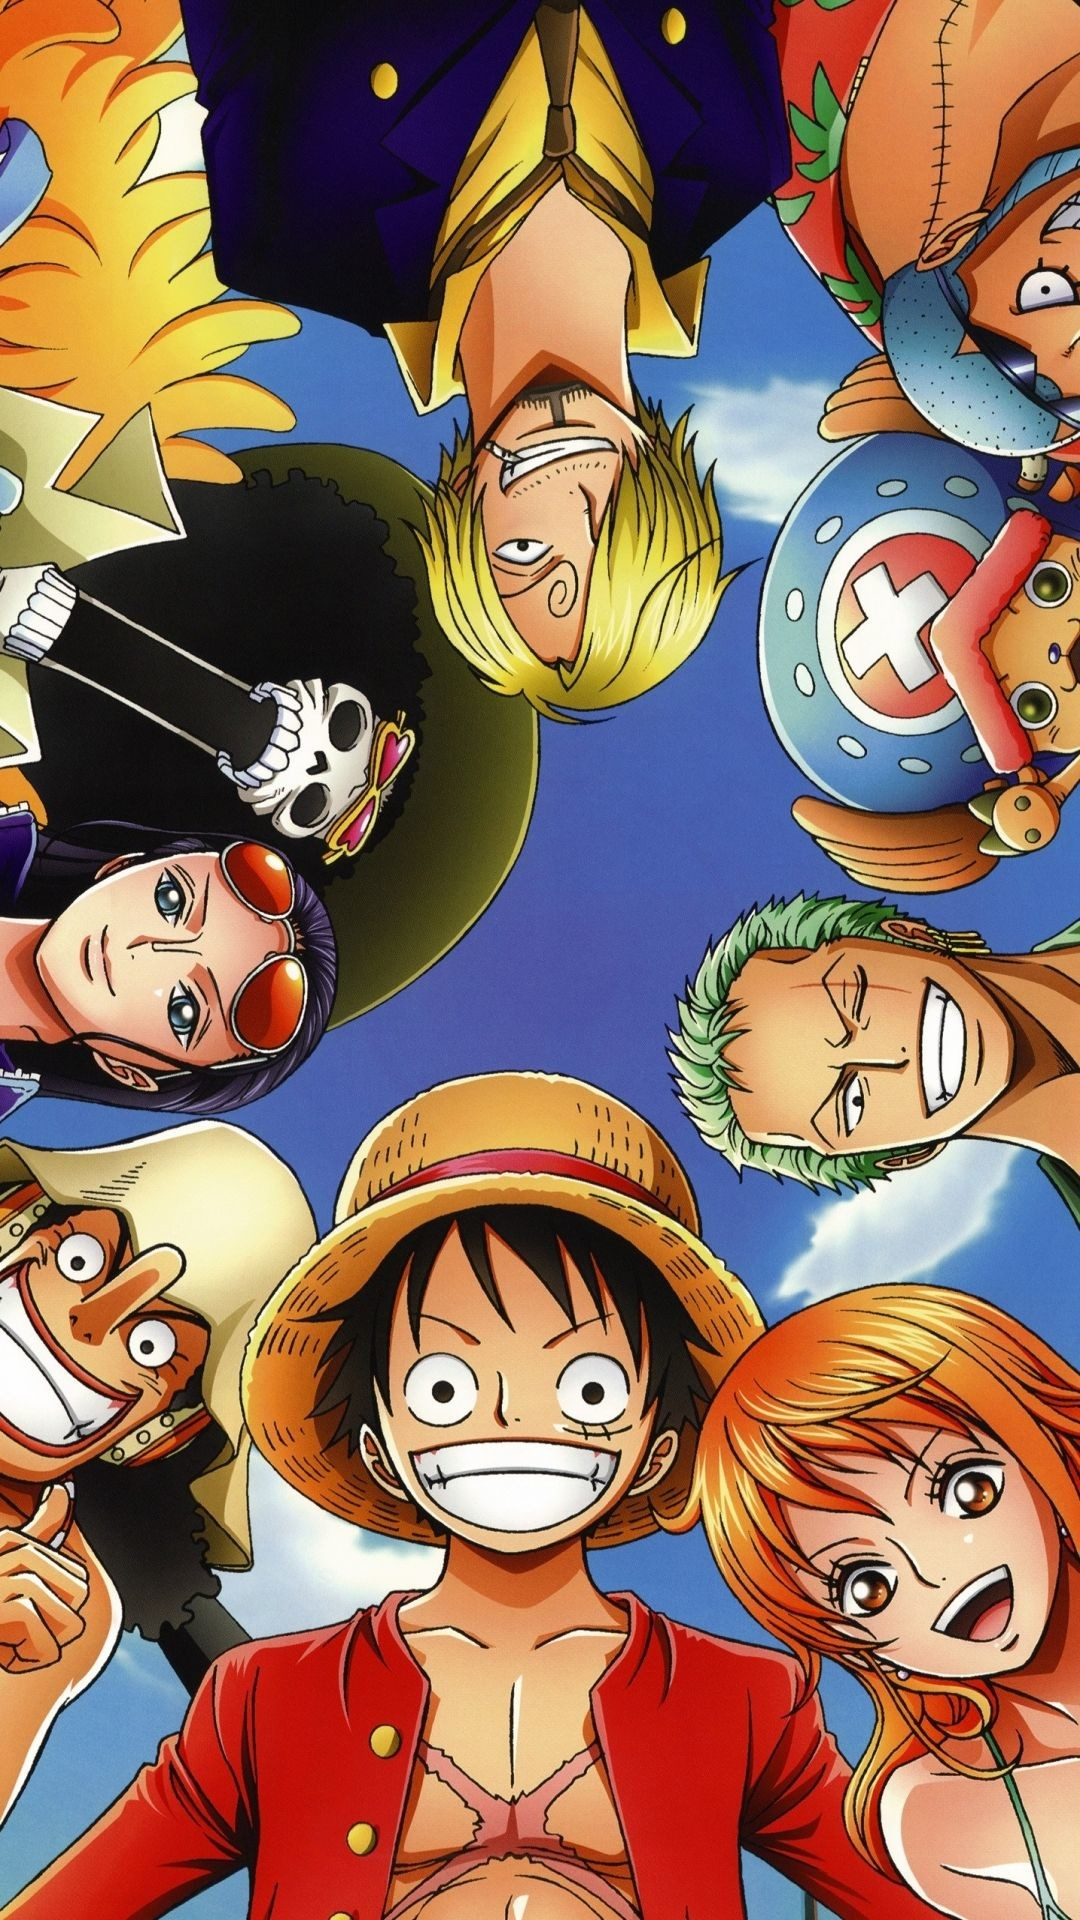 Res: 1080x1920, One Piece Iphone Wallpaper Download Free.